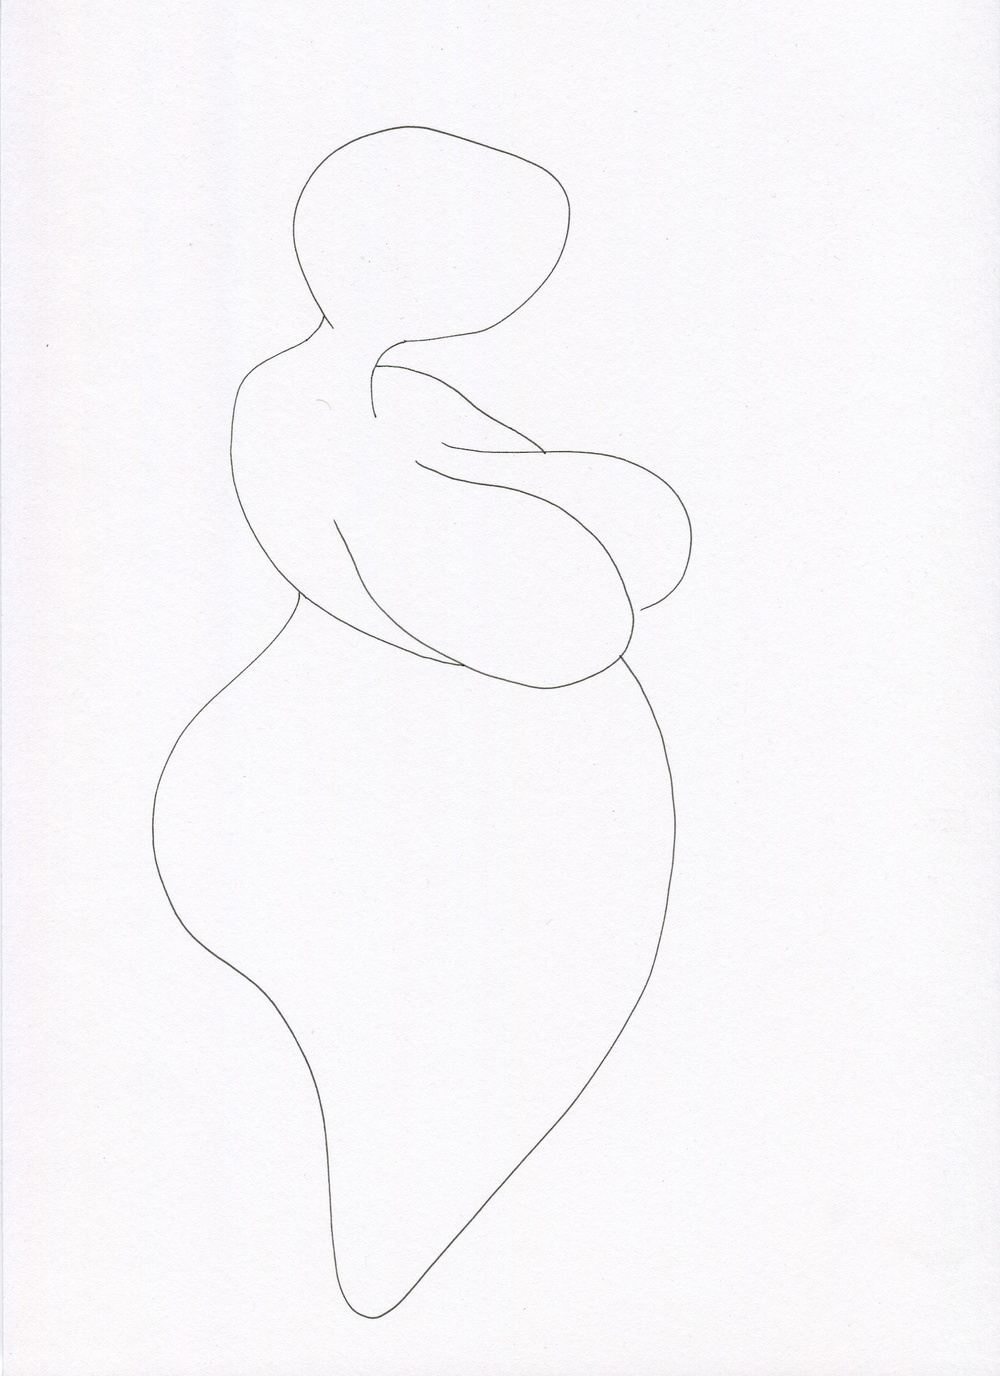 Serene from the Venus of Brisbane series, 2015, Ink on paper, 21.0 x 30.0 cm